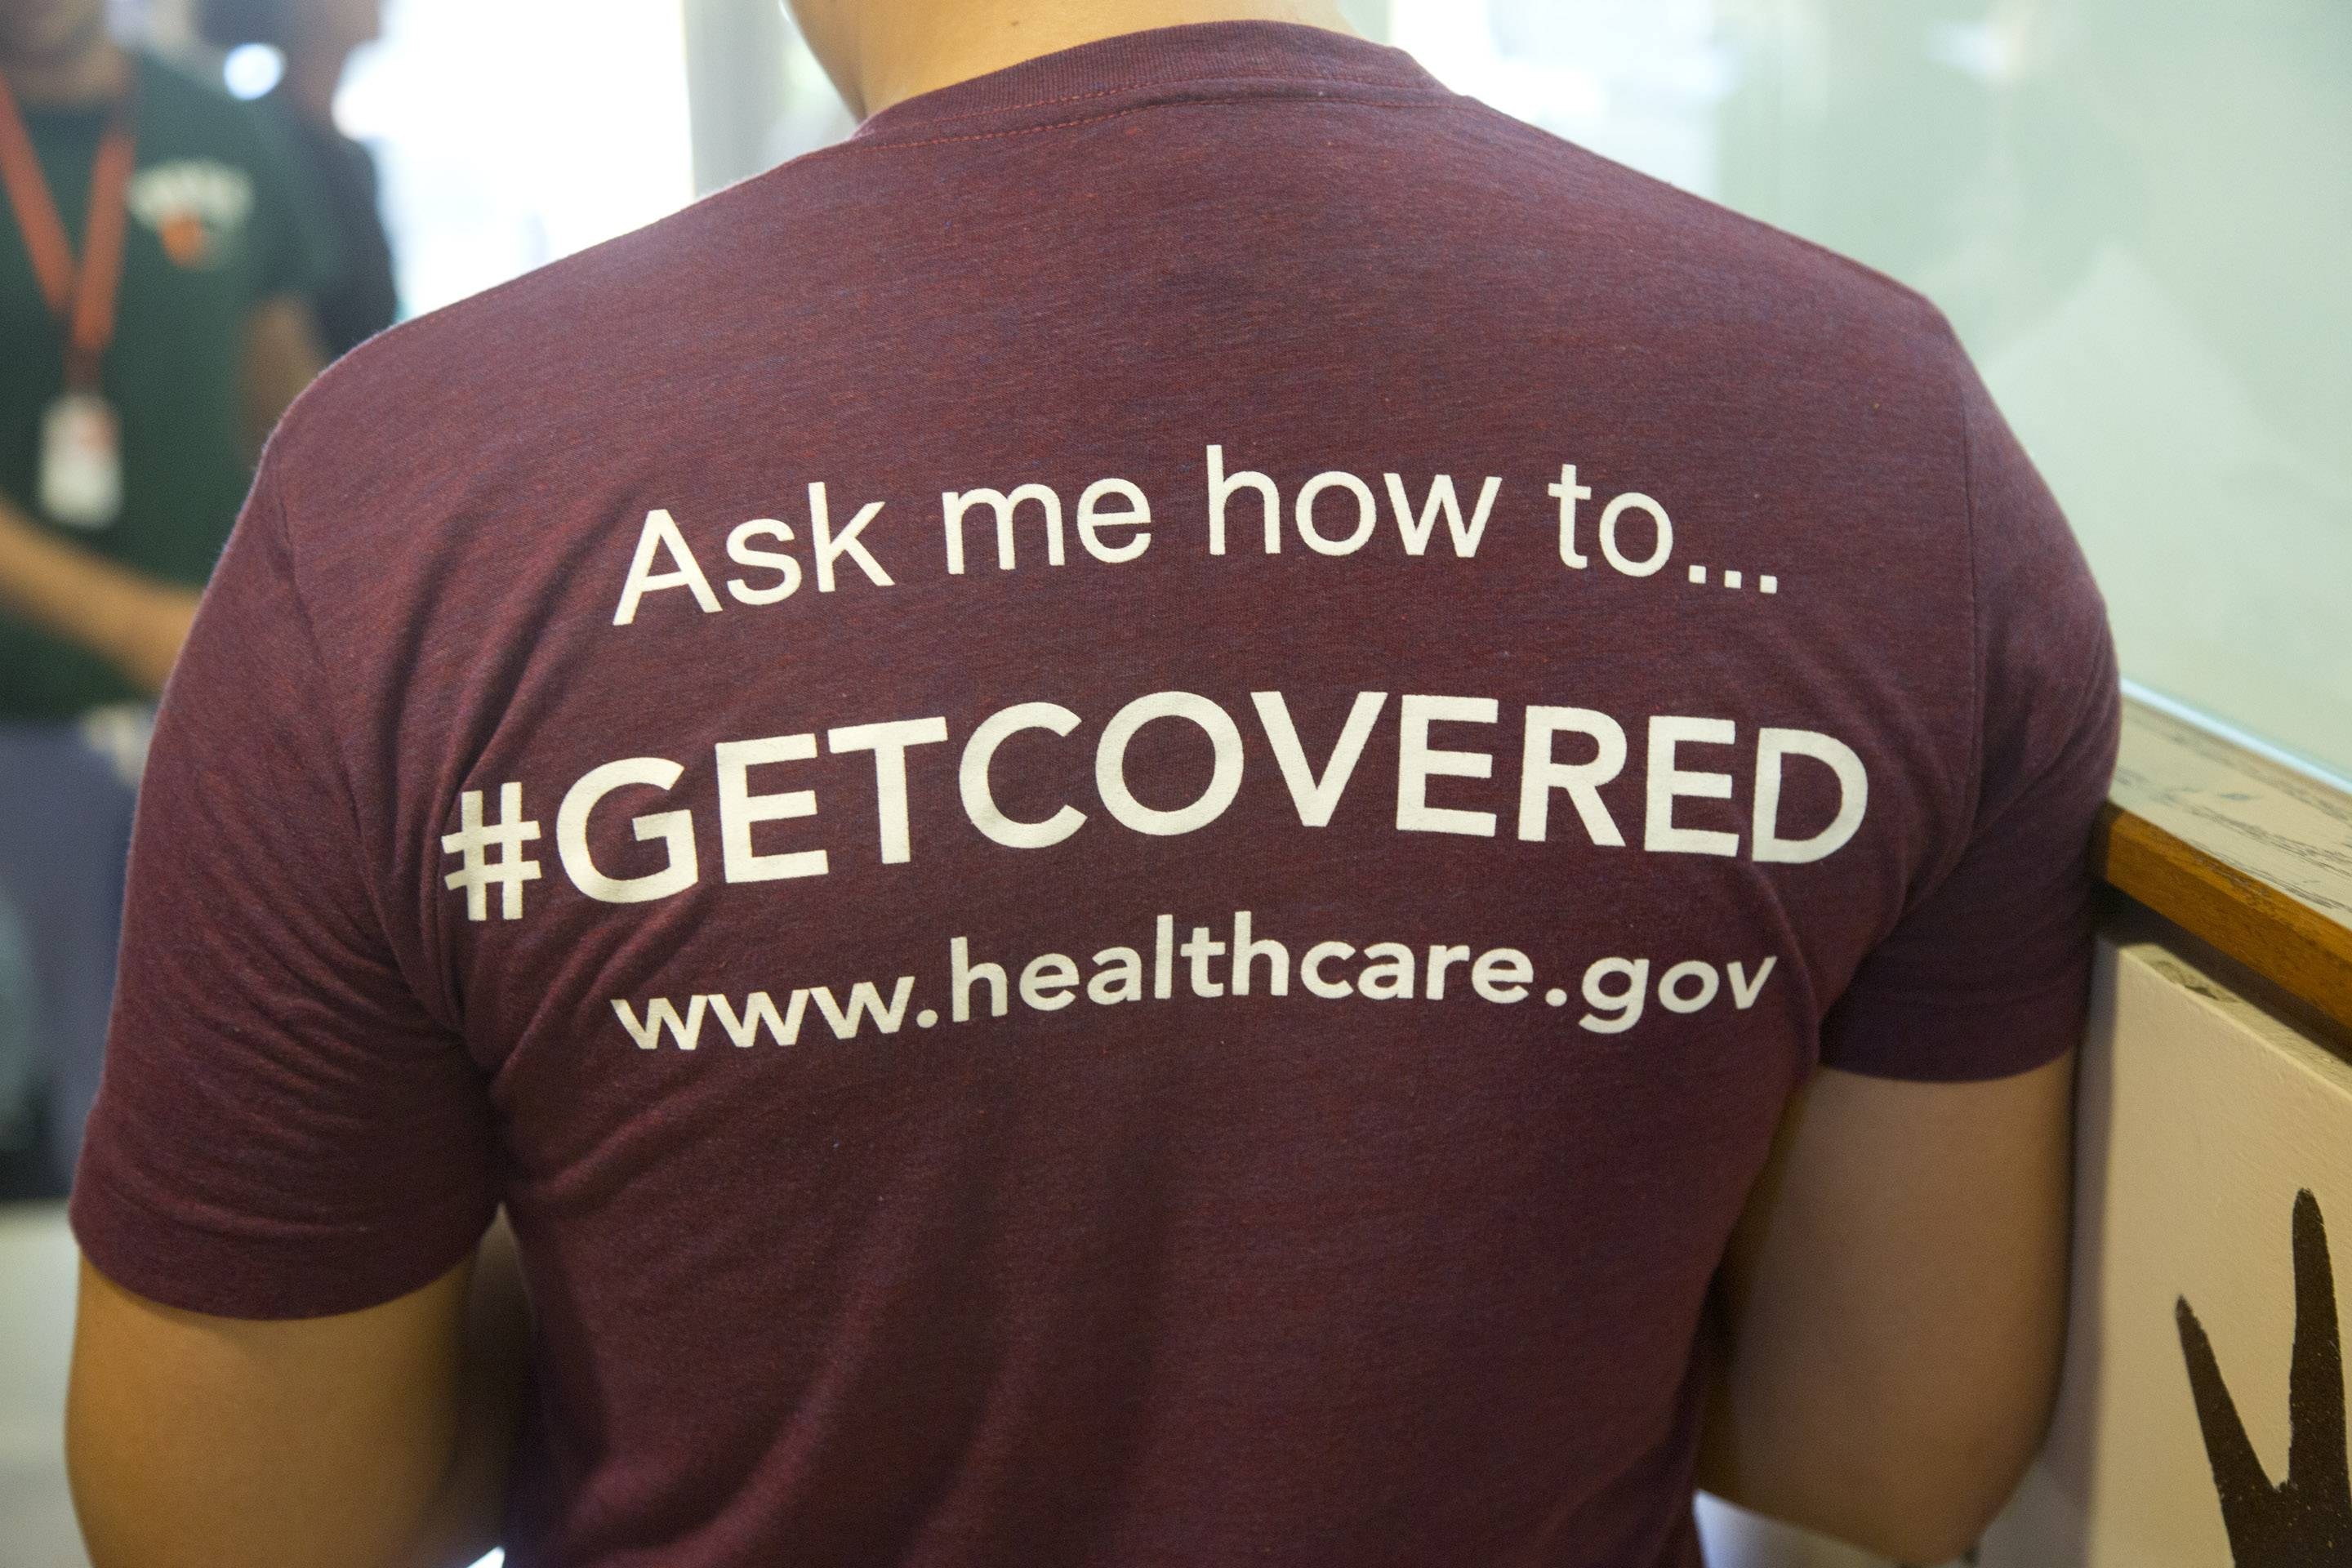 A volunteer health care worker recruits people to sign up for the new health care programs. As federal health officials are aggressively courting young adults to sign up for health insurance with celebrity endorsement and social media campaigns, they are also getting significant help from the very demographic they're targeting.